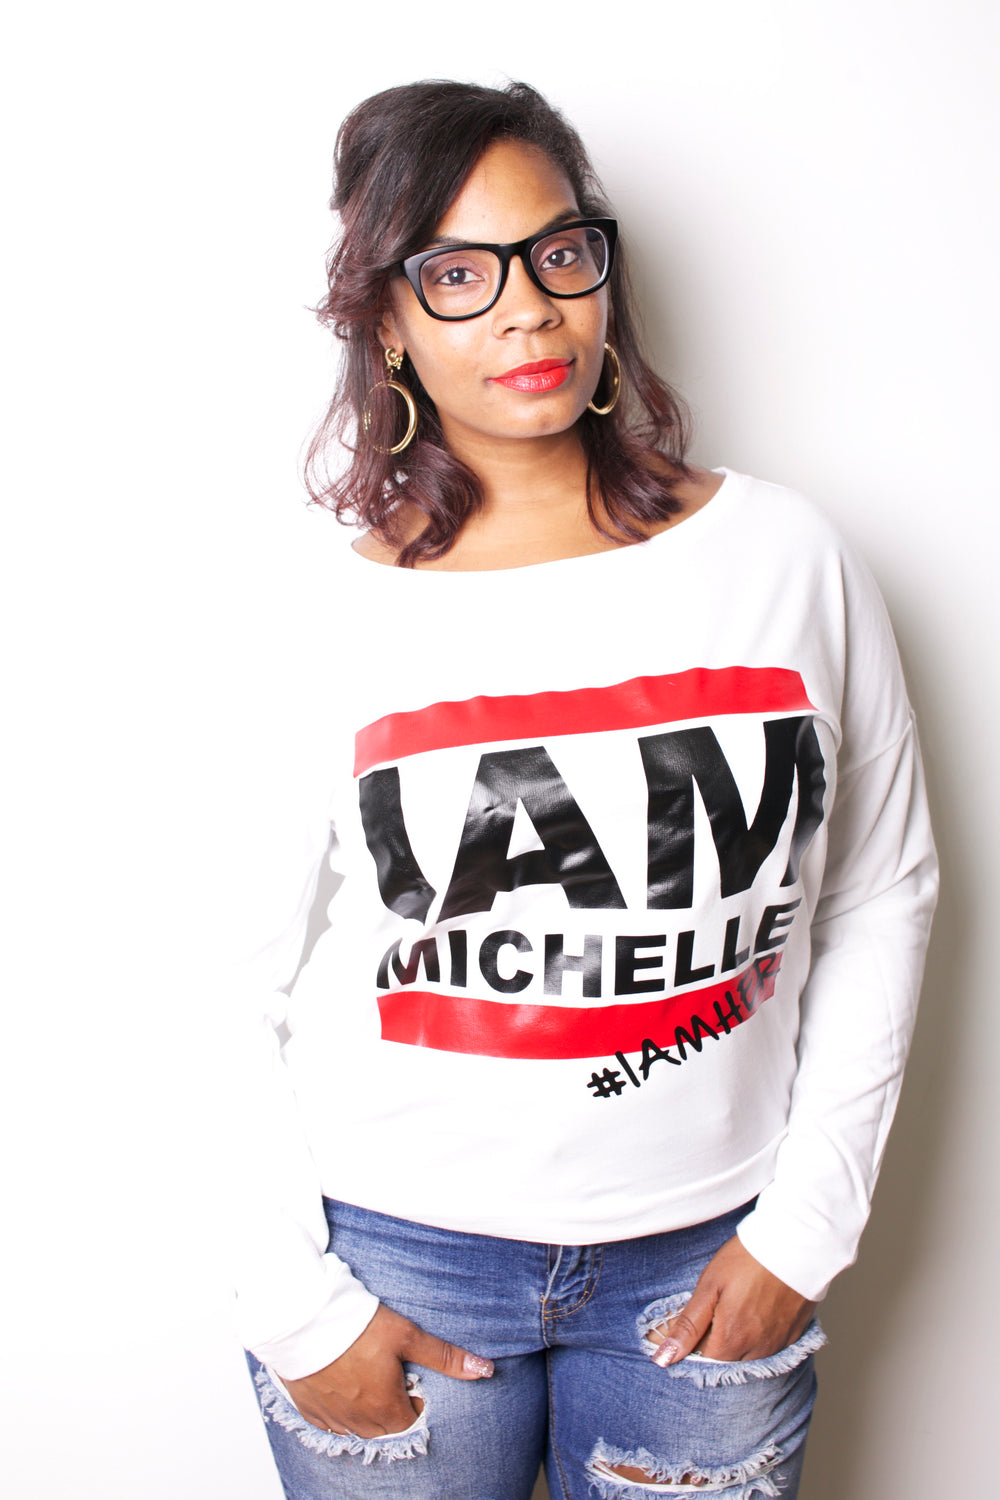 I AM MICHELLE - Women's Long Sleeve Tee - White - I AM HER Apparel, LLC